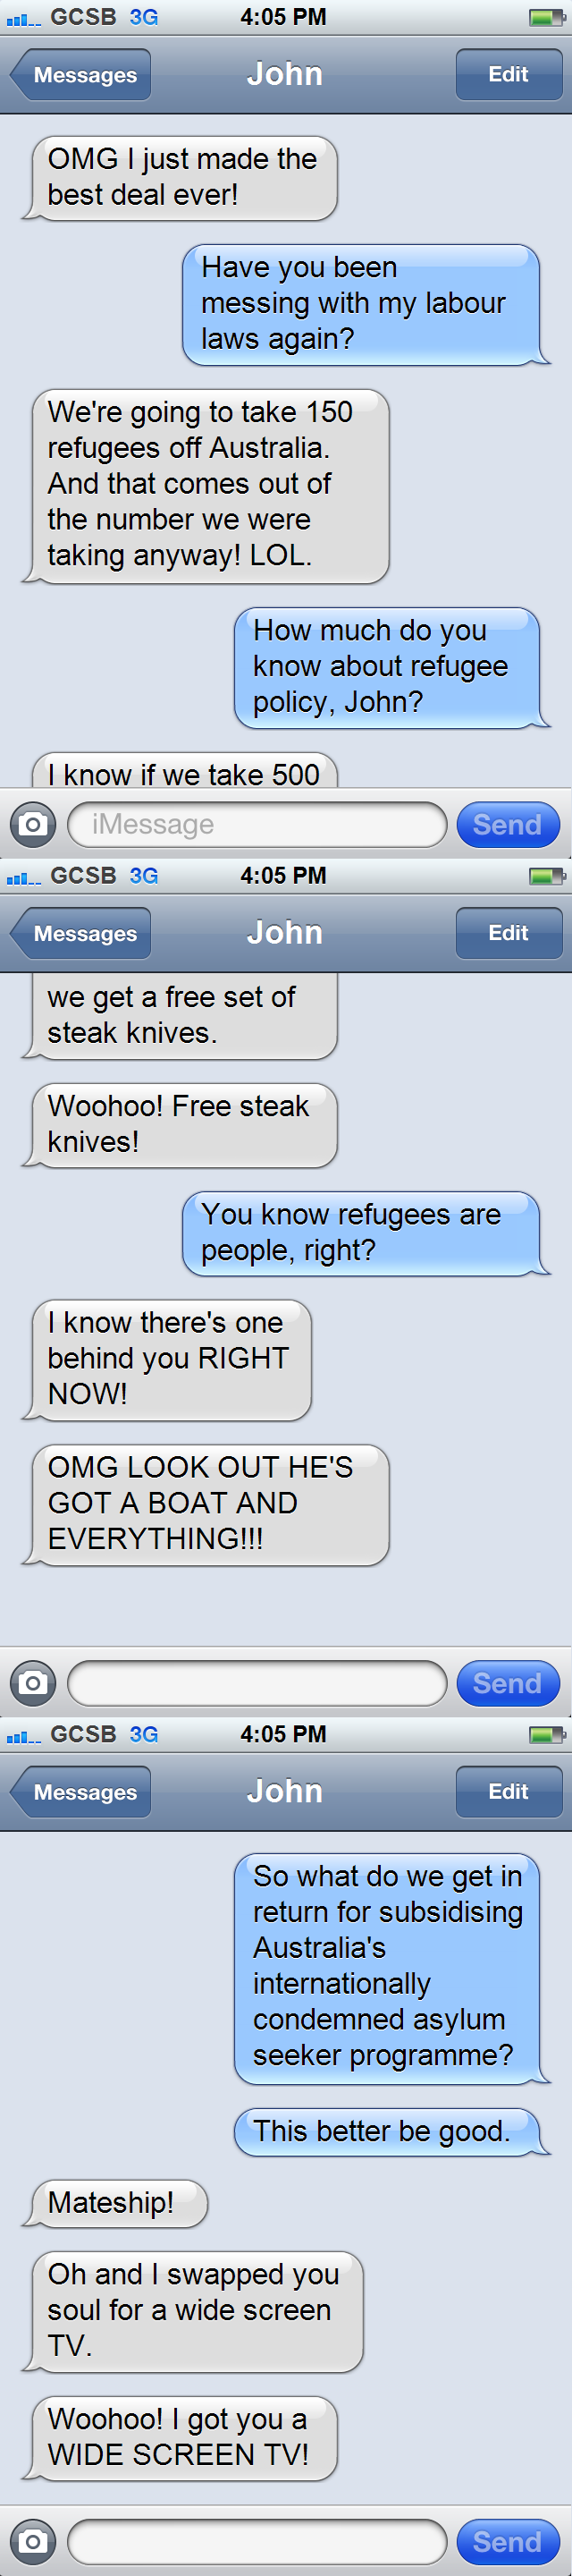 John Key iPhone texts: asylum seekers